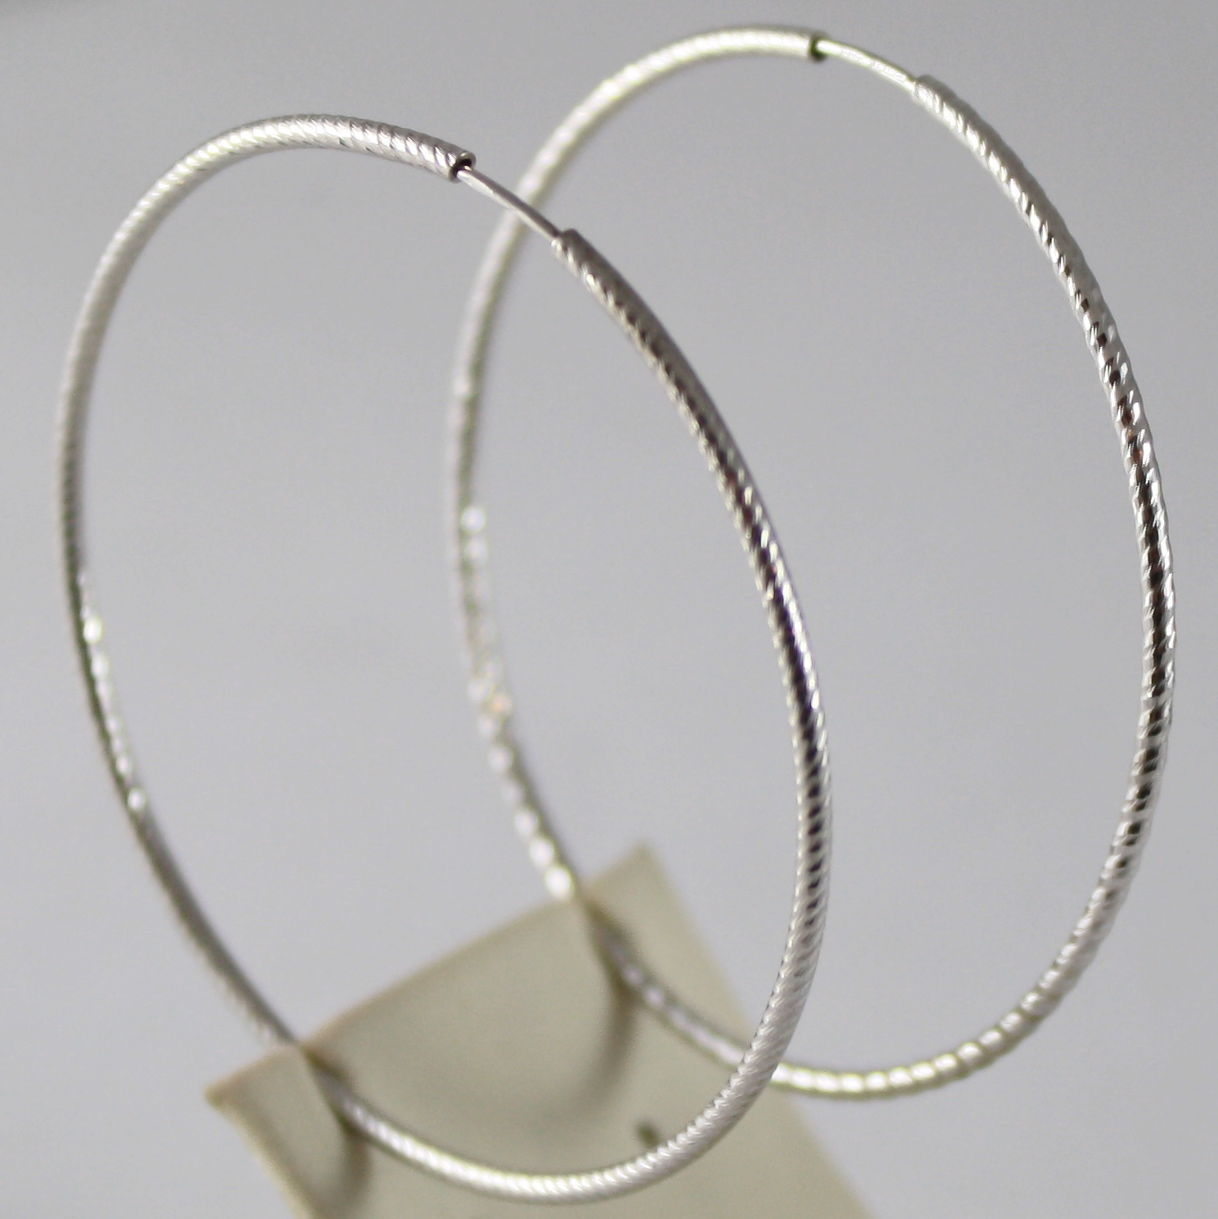 SOLID 18K WHITE GOLD CIRCLE EARRINGS HOOP, STRIPES, DIAM 1.69 In, MADE IN ITALY